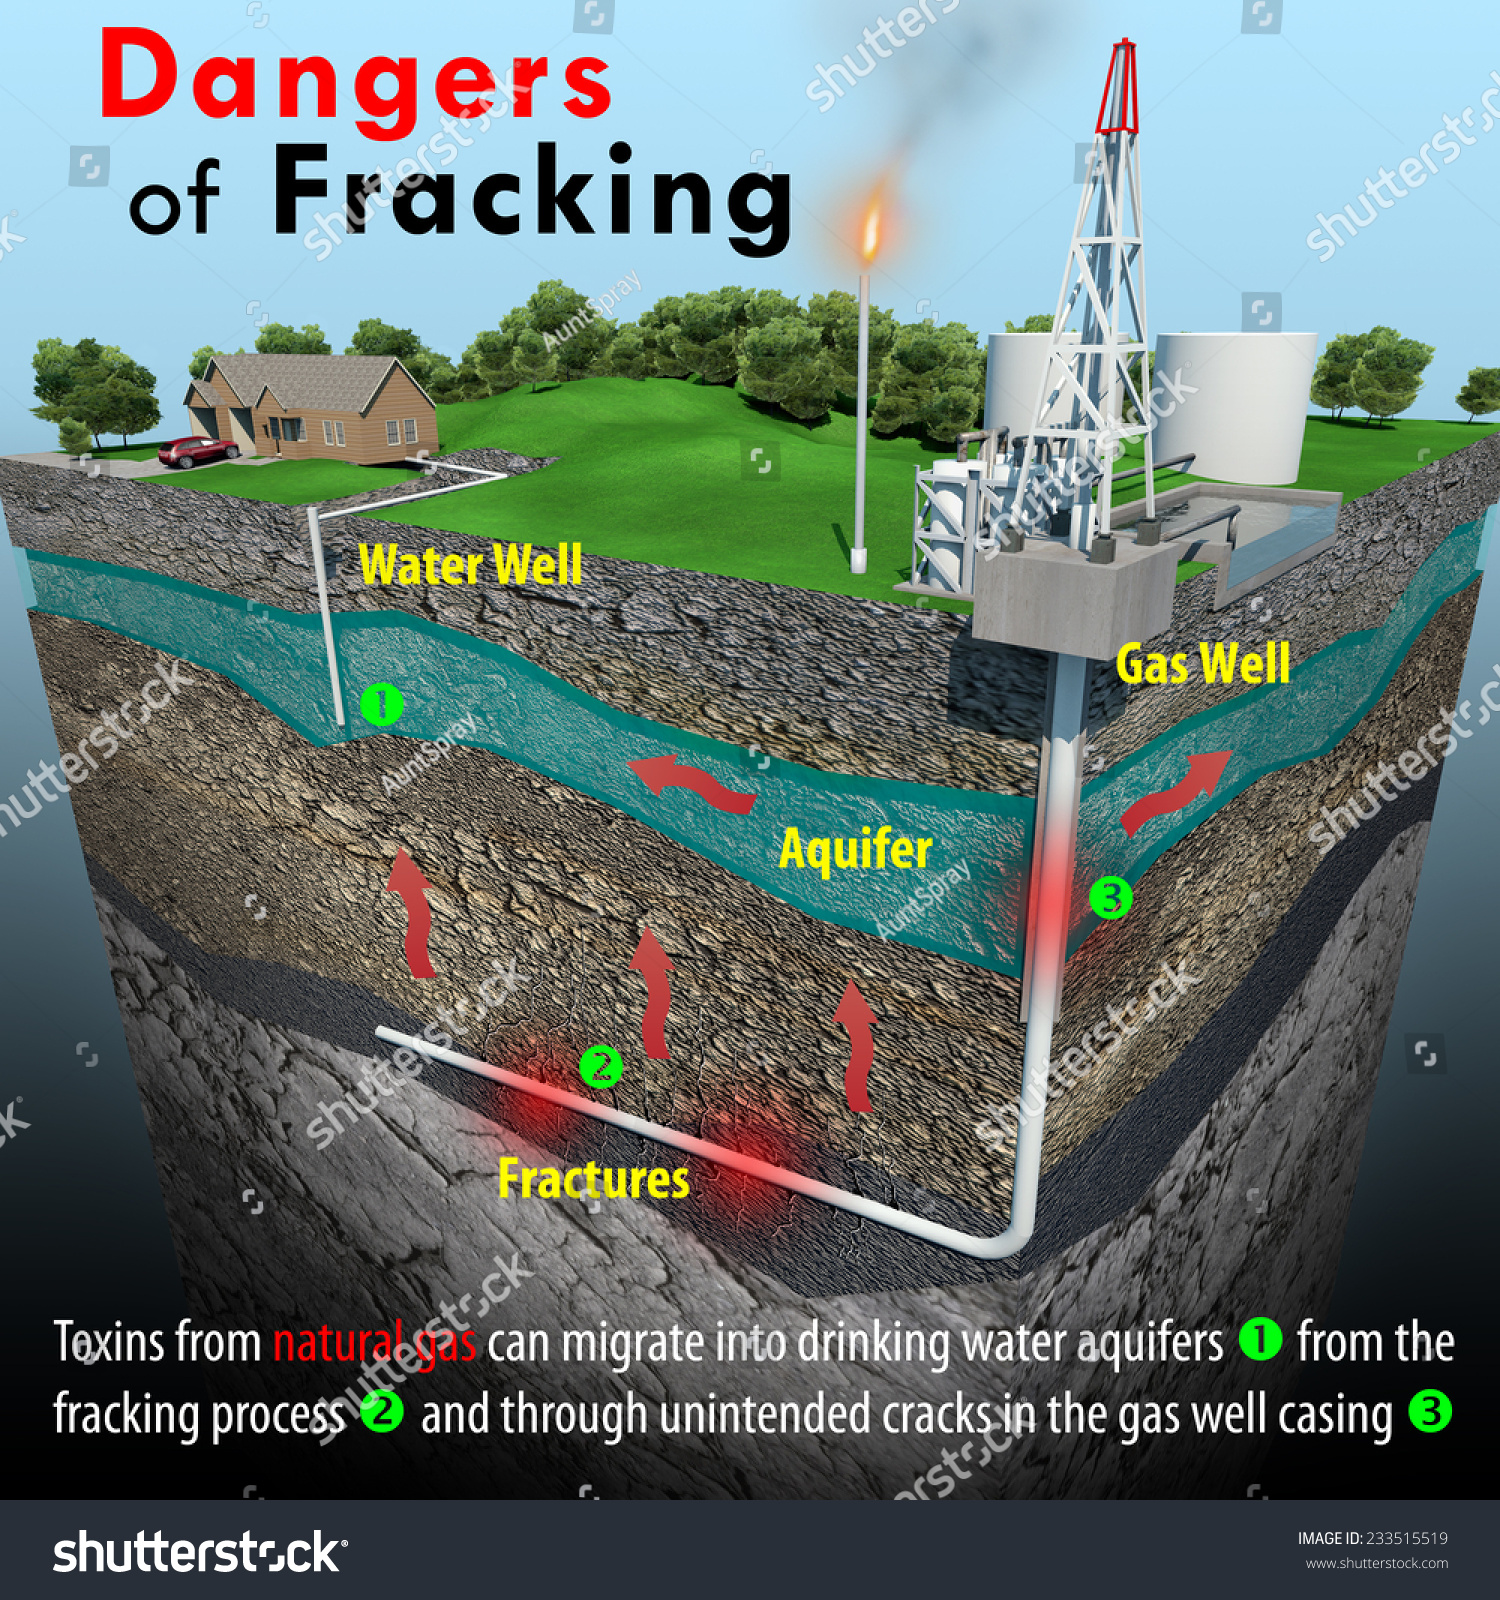 Fracking and the potential dangers it poses to residential drinking